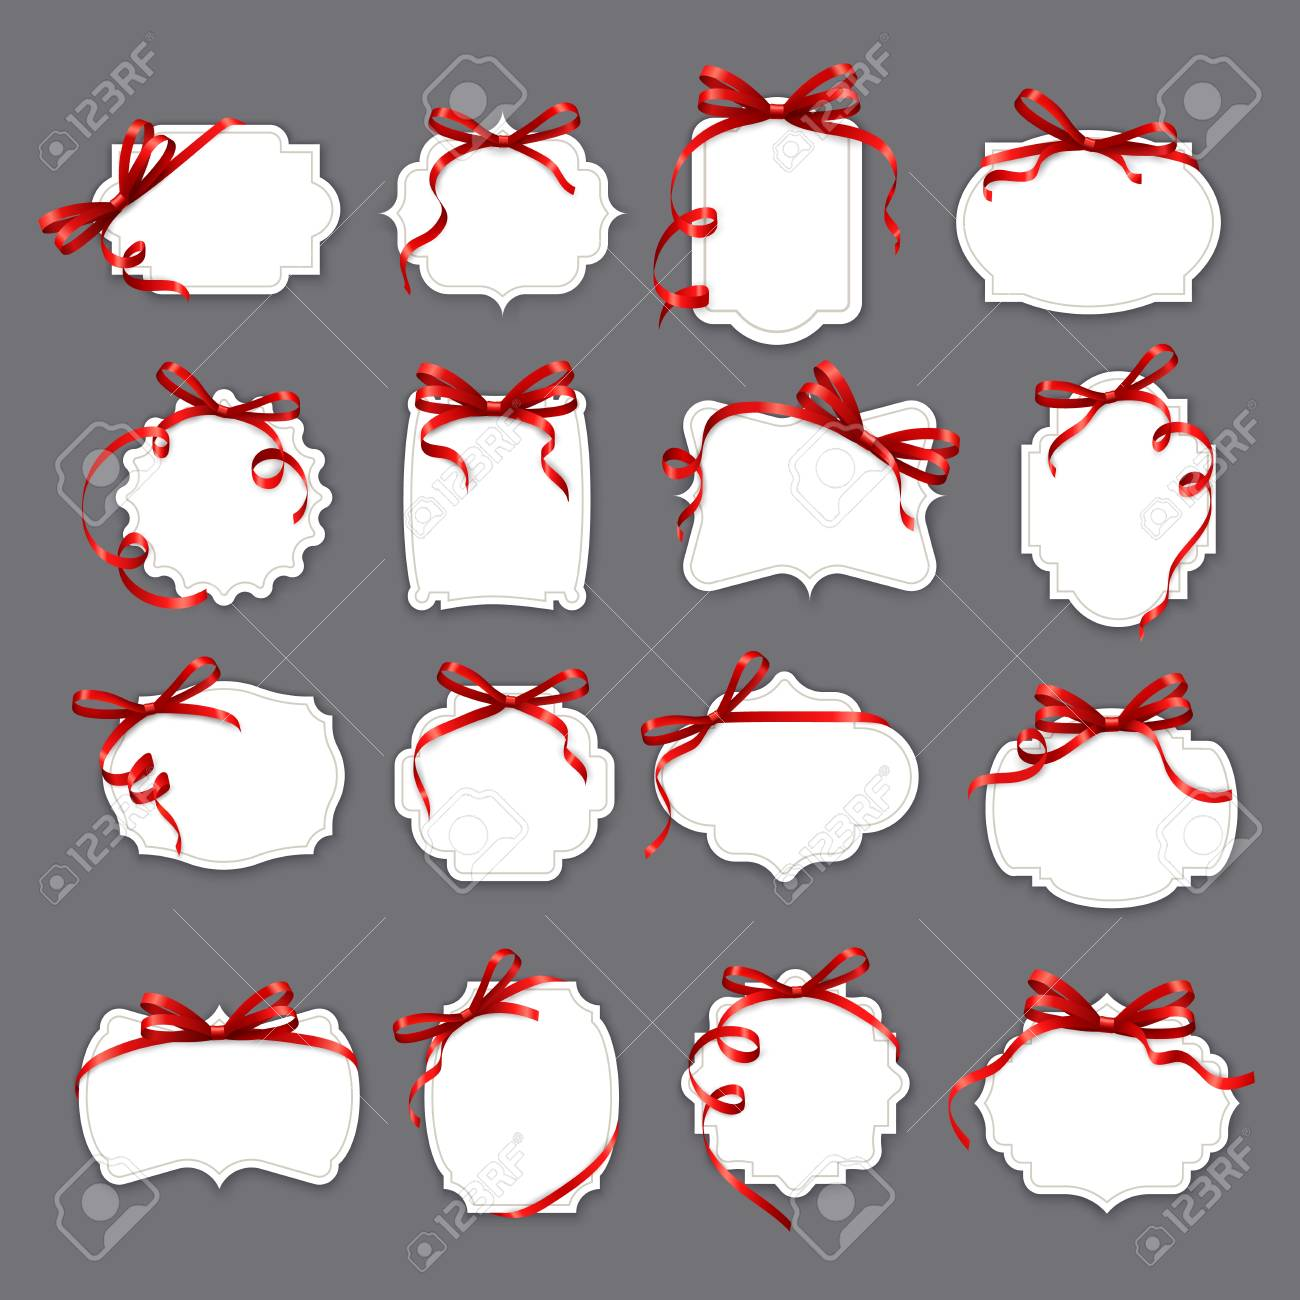 Christmas Save The Date Clipart.Frames And Red Ribbons Valentine Day Wedding And Save The Date